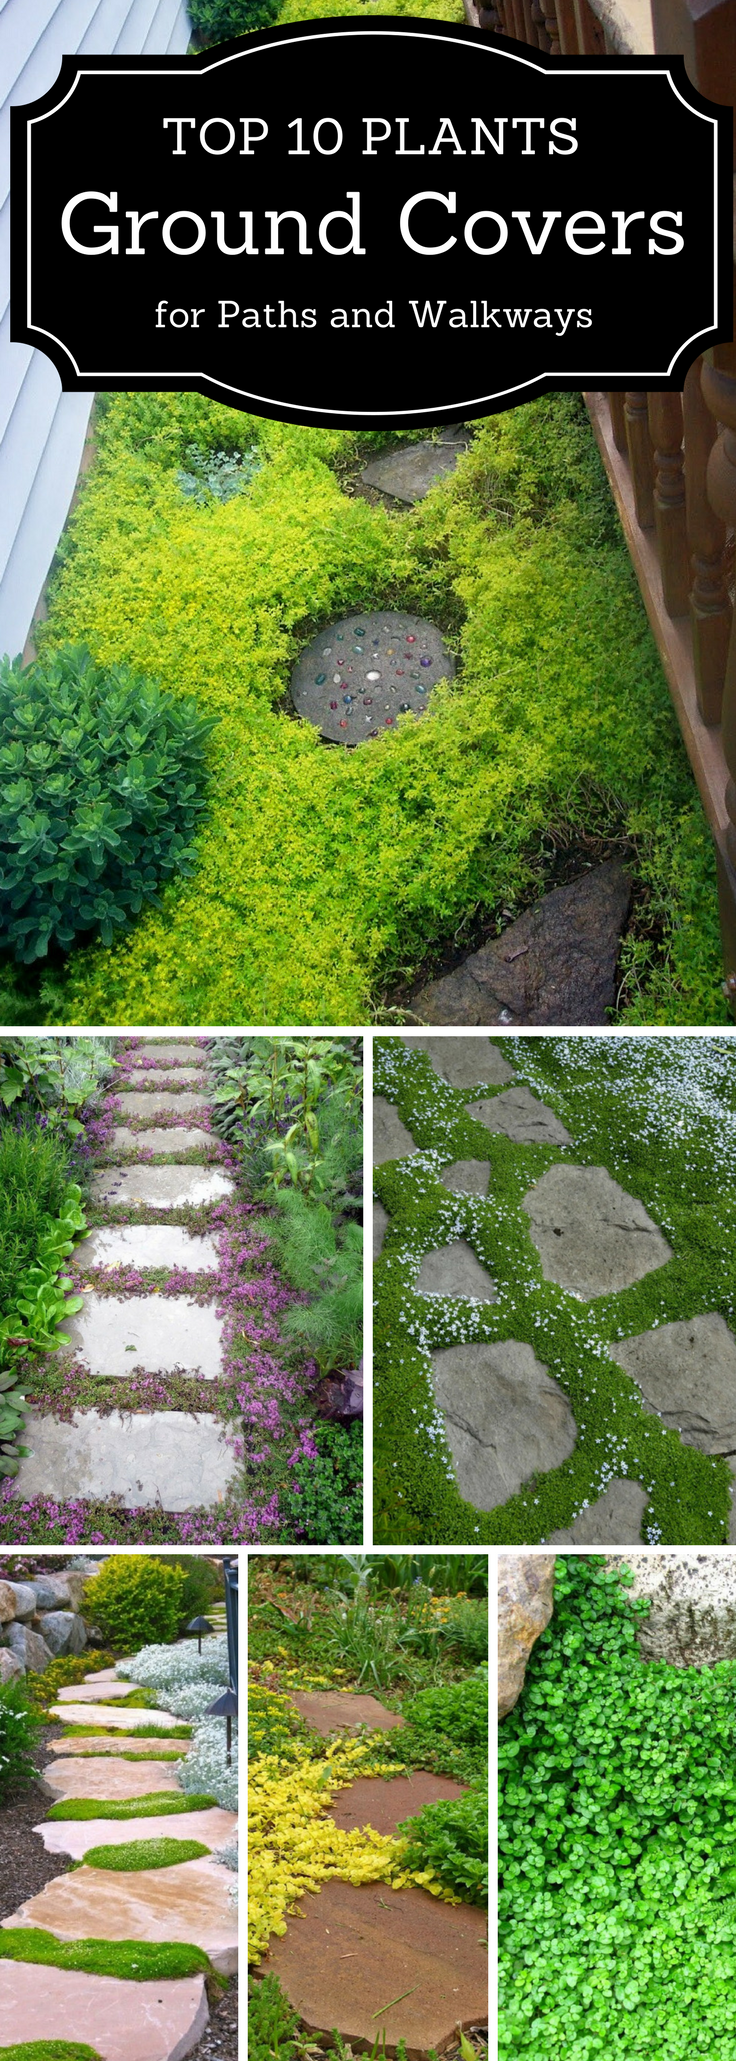 top 10 plants and ground cover for your paths and walkways - Ground Cover Ideas